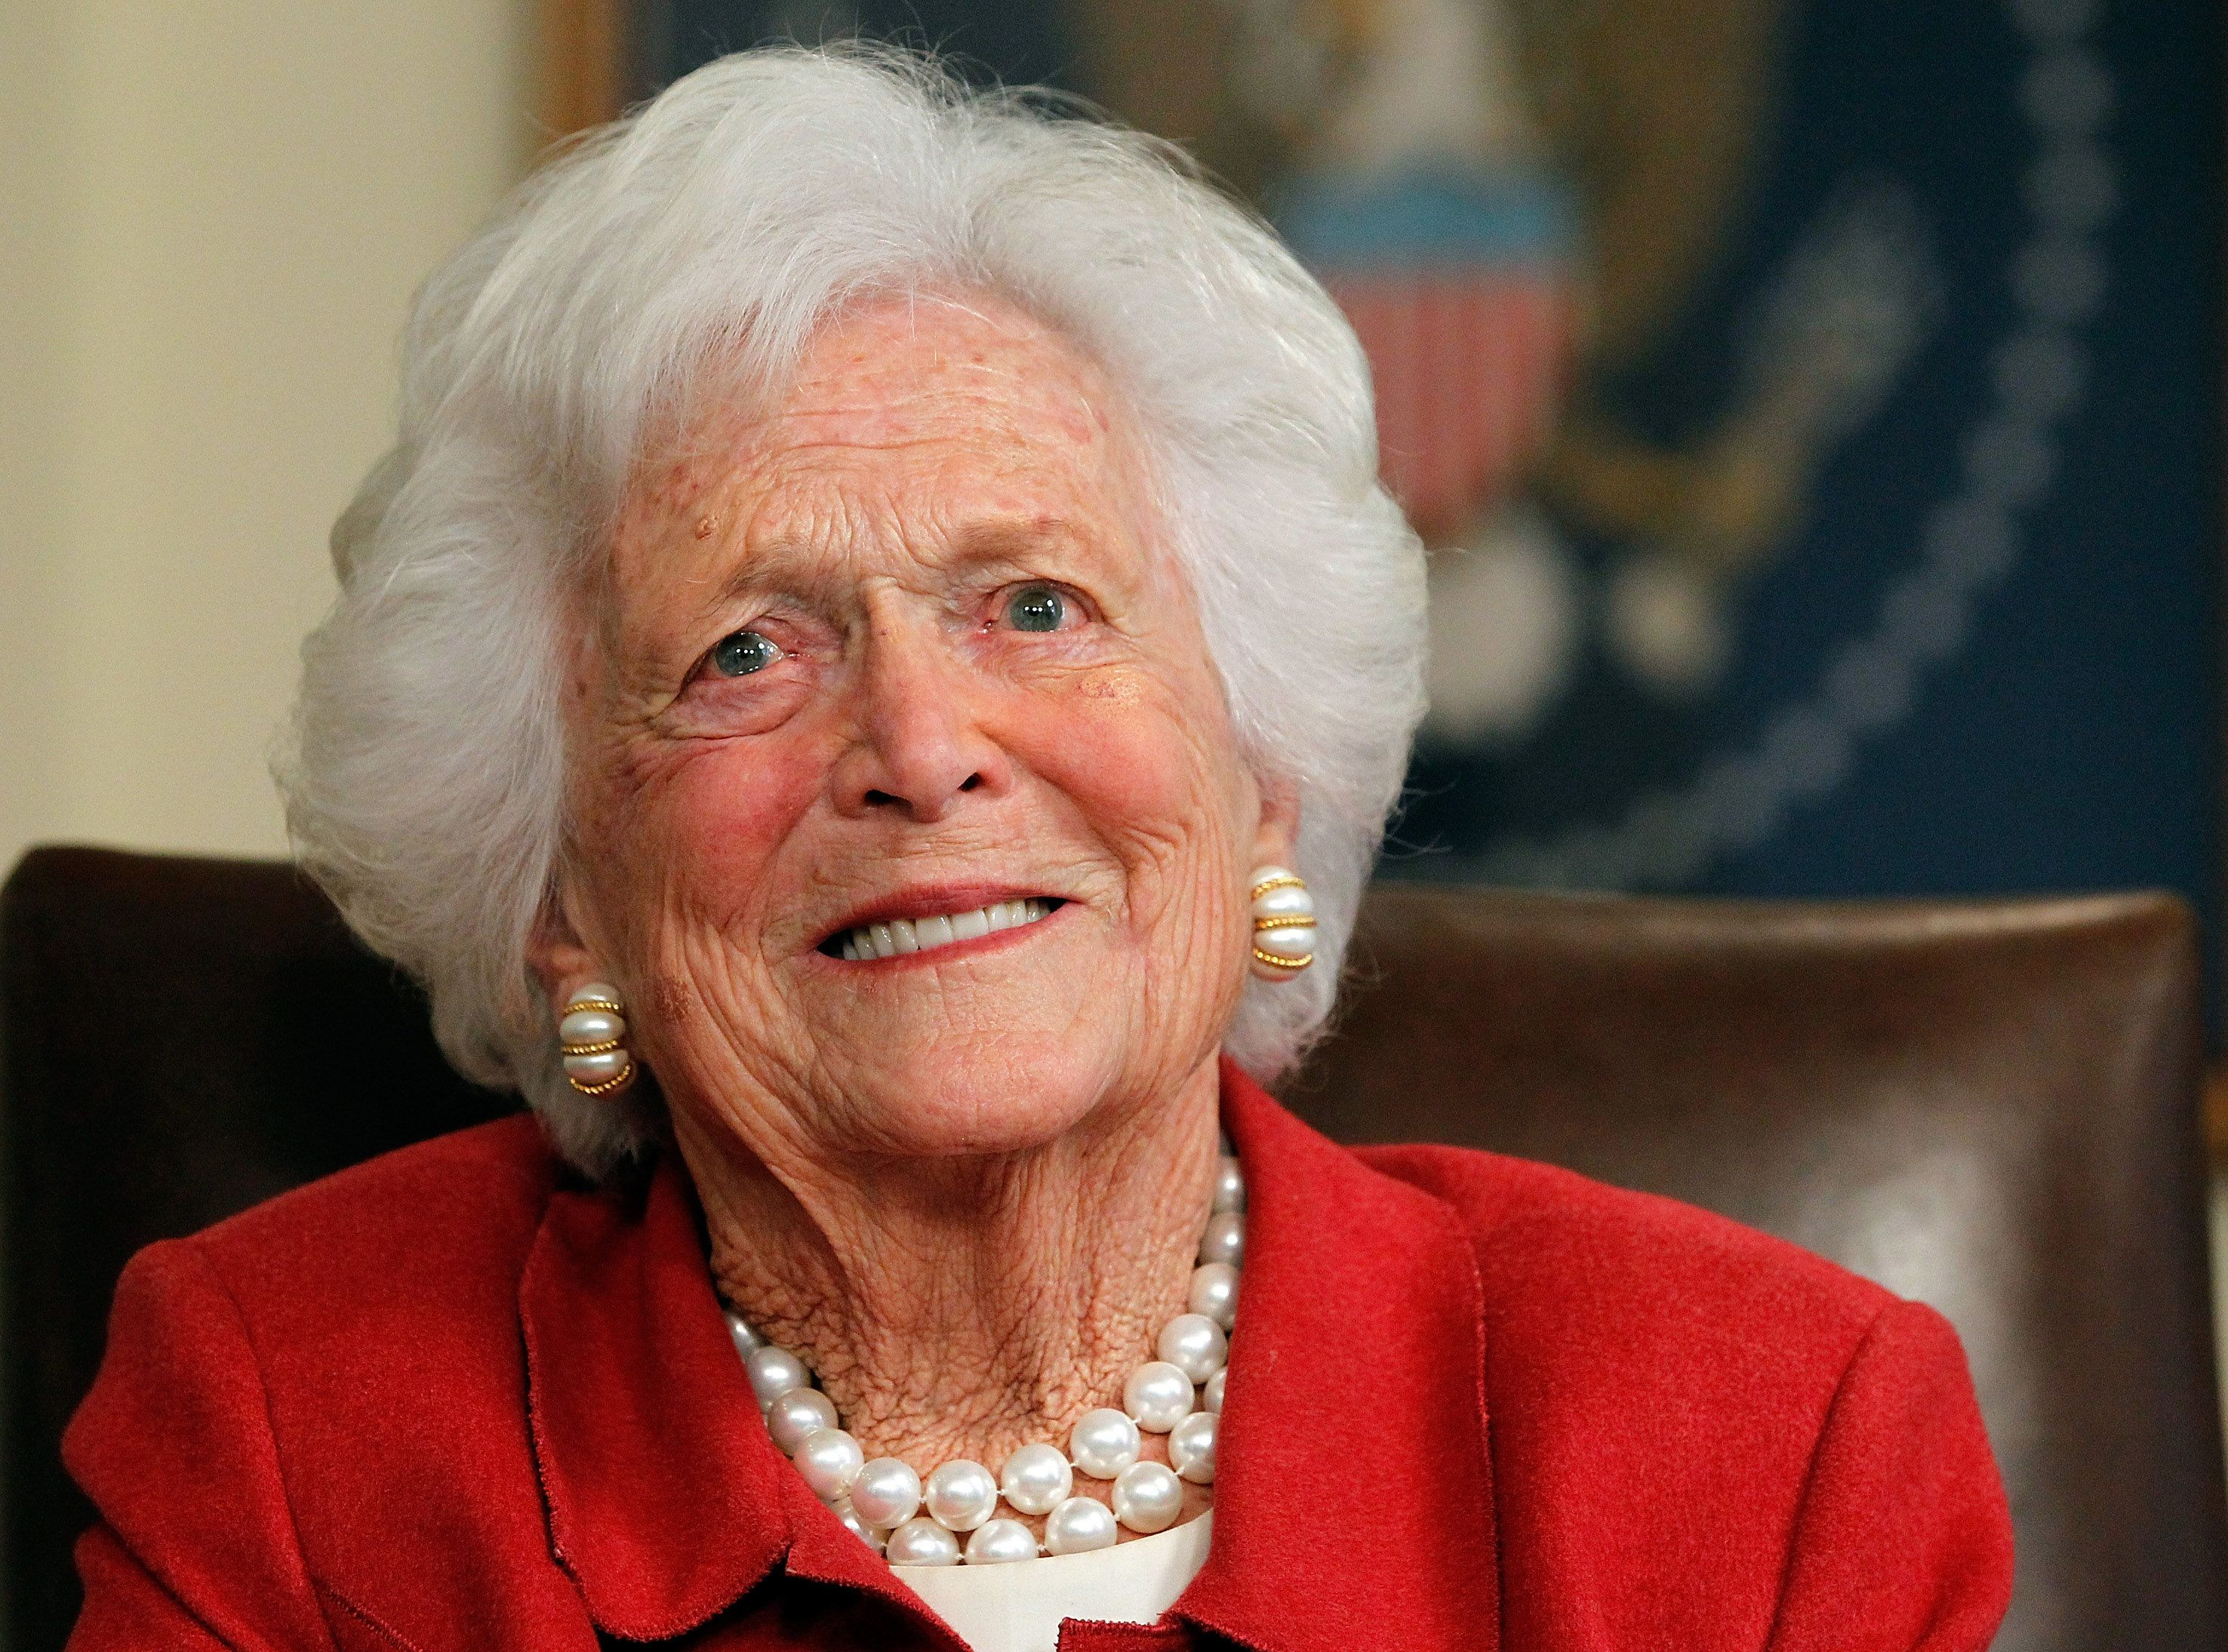 HOUSTON, TX - MARCH 29:  Barbara Bush talks with Republican presidential candidate, former Massachusetts Gov. Mitt Romney at Former President George H. W. Bush's office on March 29, 2012 in Houston, Texas. Mitt Romney received an endorsement from Former President George H.W. Bush and Barbara Bush during the meeting.  (Photo by Tom Pennington/Getty Images)